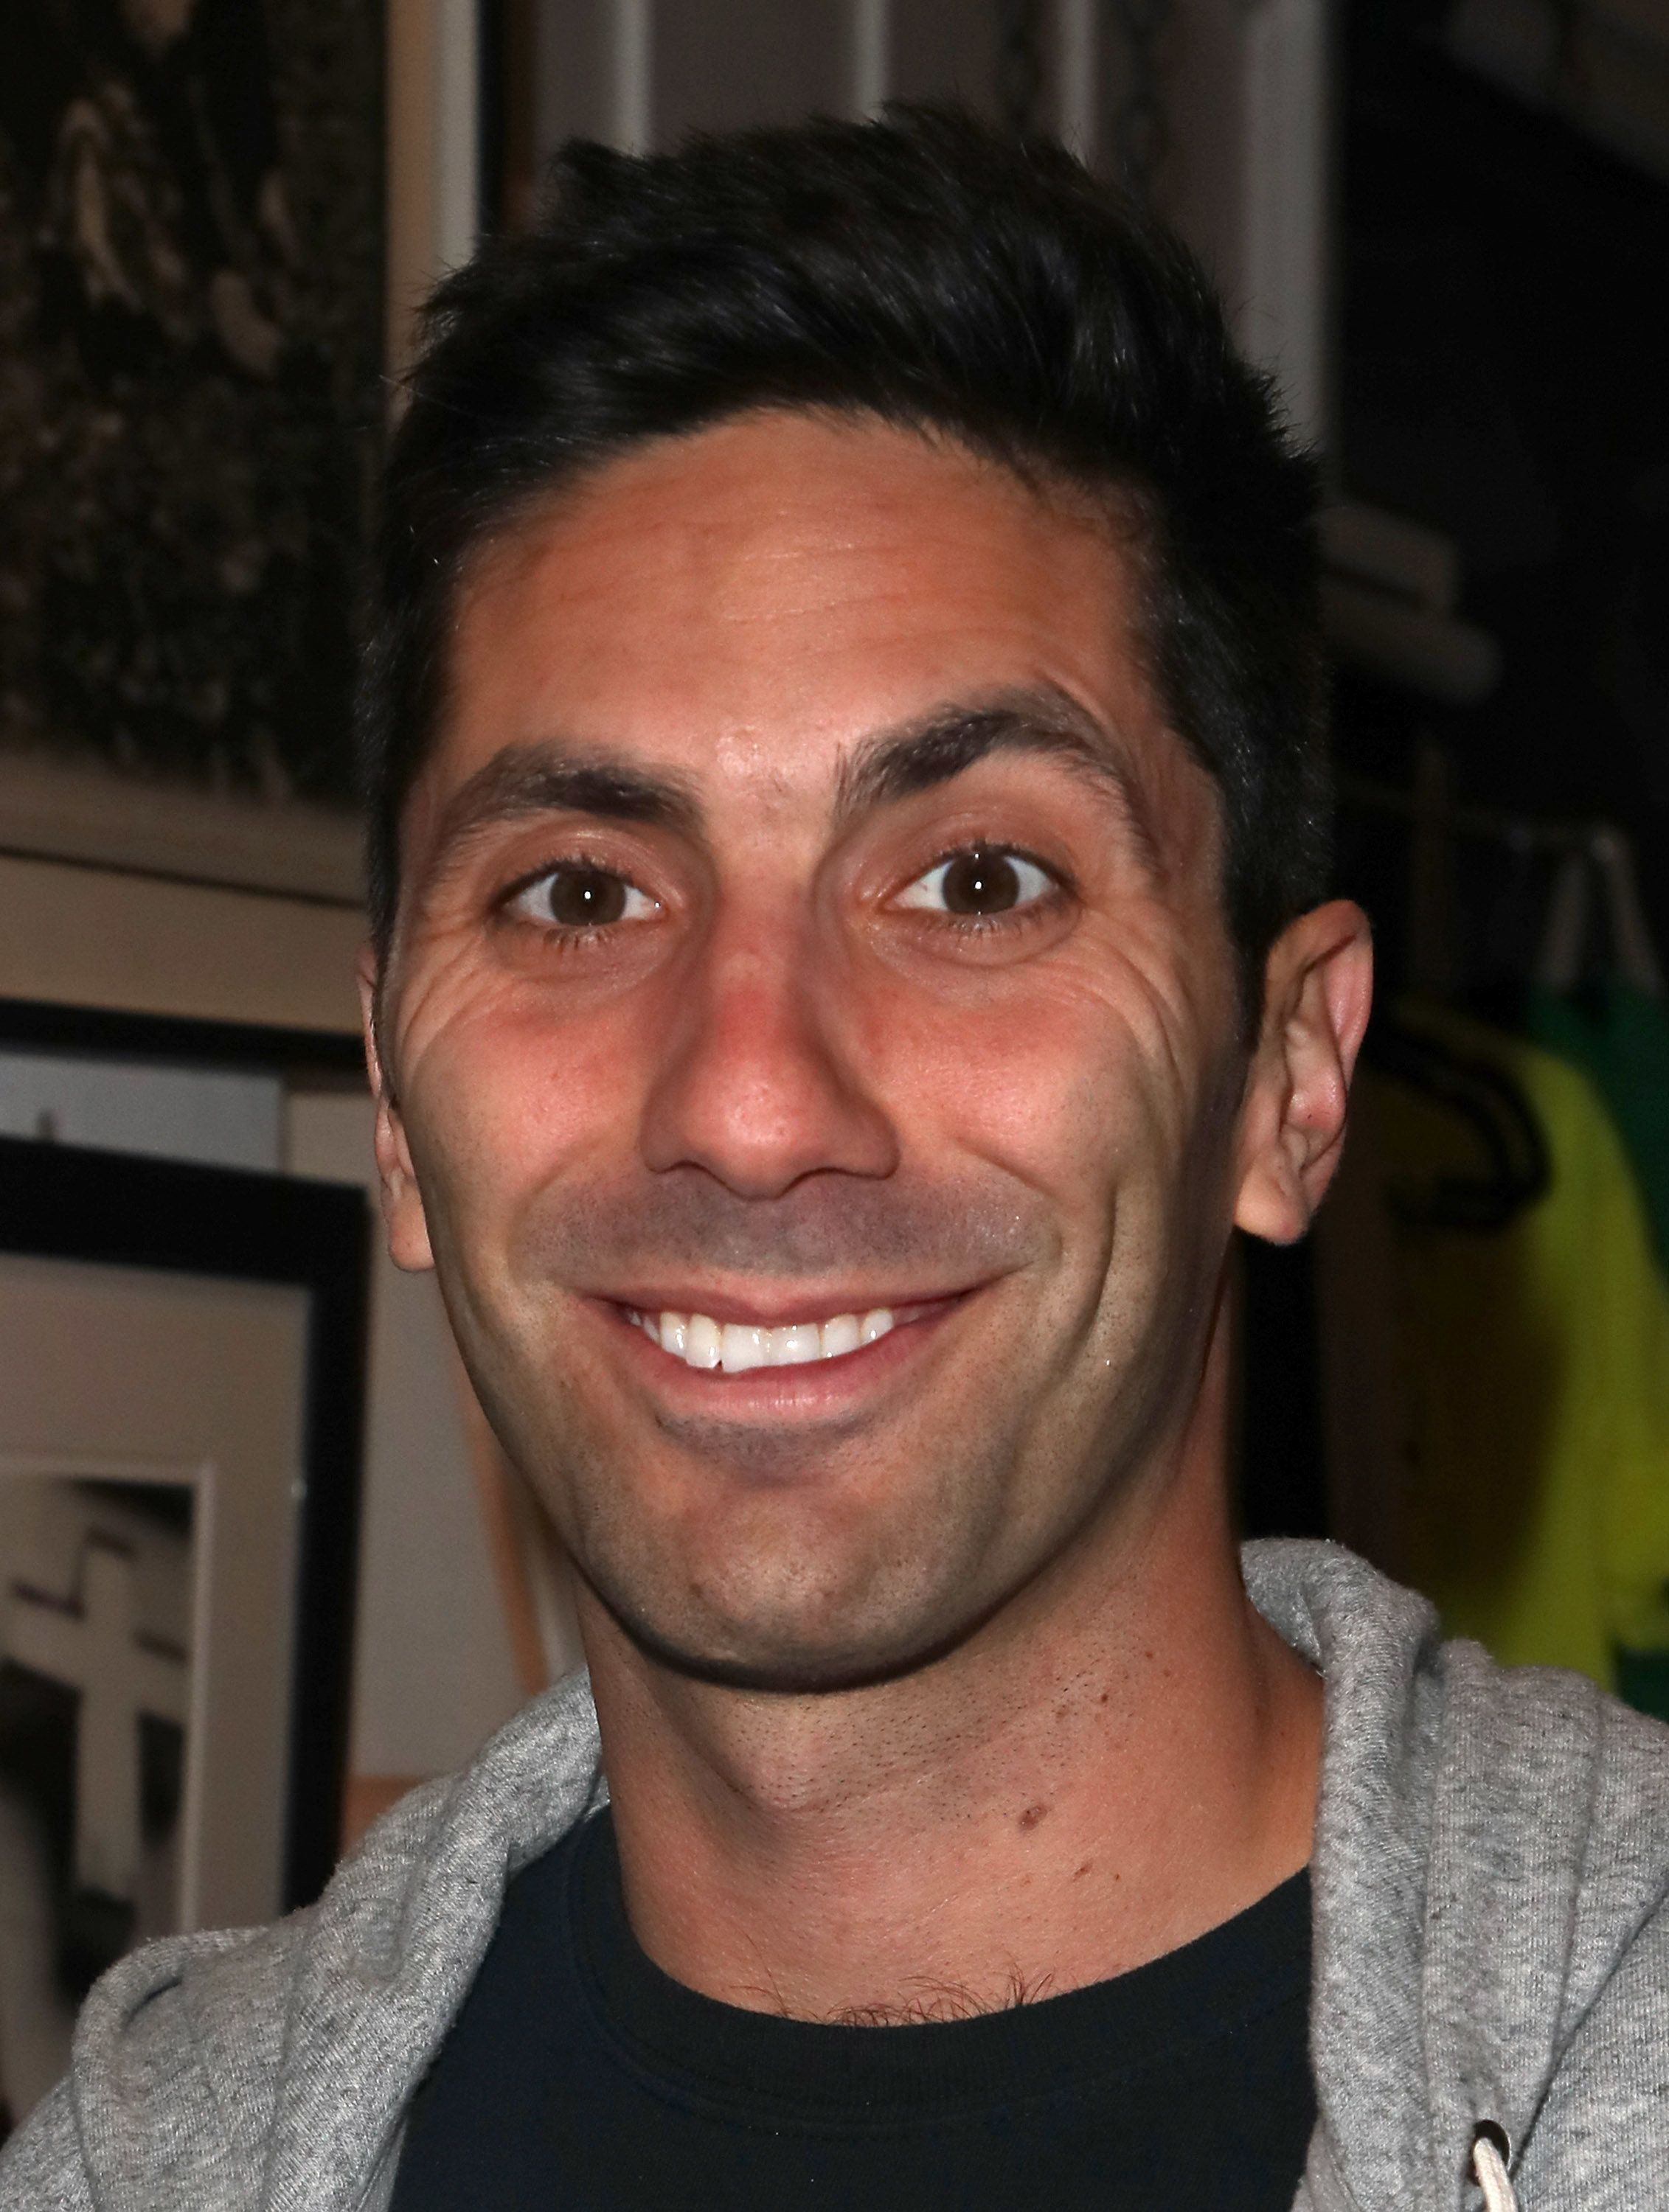 LOS ANGELES, CA - APRIL 06:  TV host /producer Nev Schulman attends ProjectArt's inaugural Los Angeles benefit reception for 'My Kid Could Do That' at The Underground Museum on April 6, 2018 in Los Angeles, California.  (Photo by David Livingston/Getty Images)